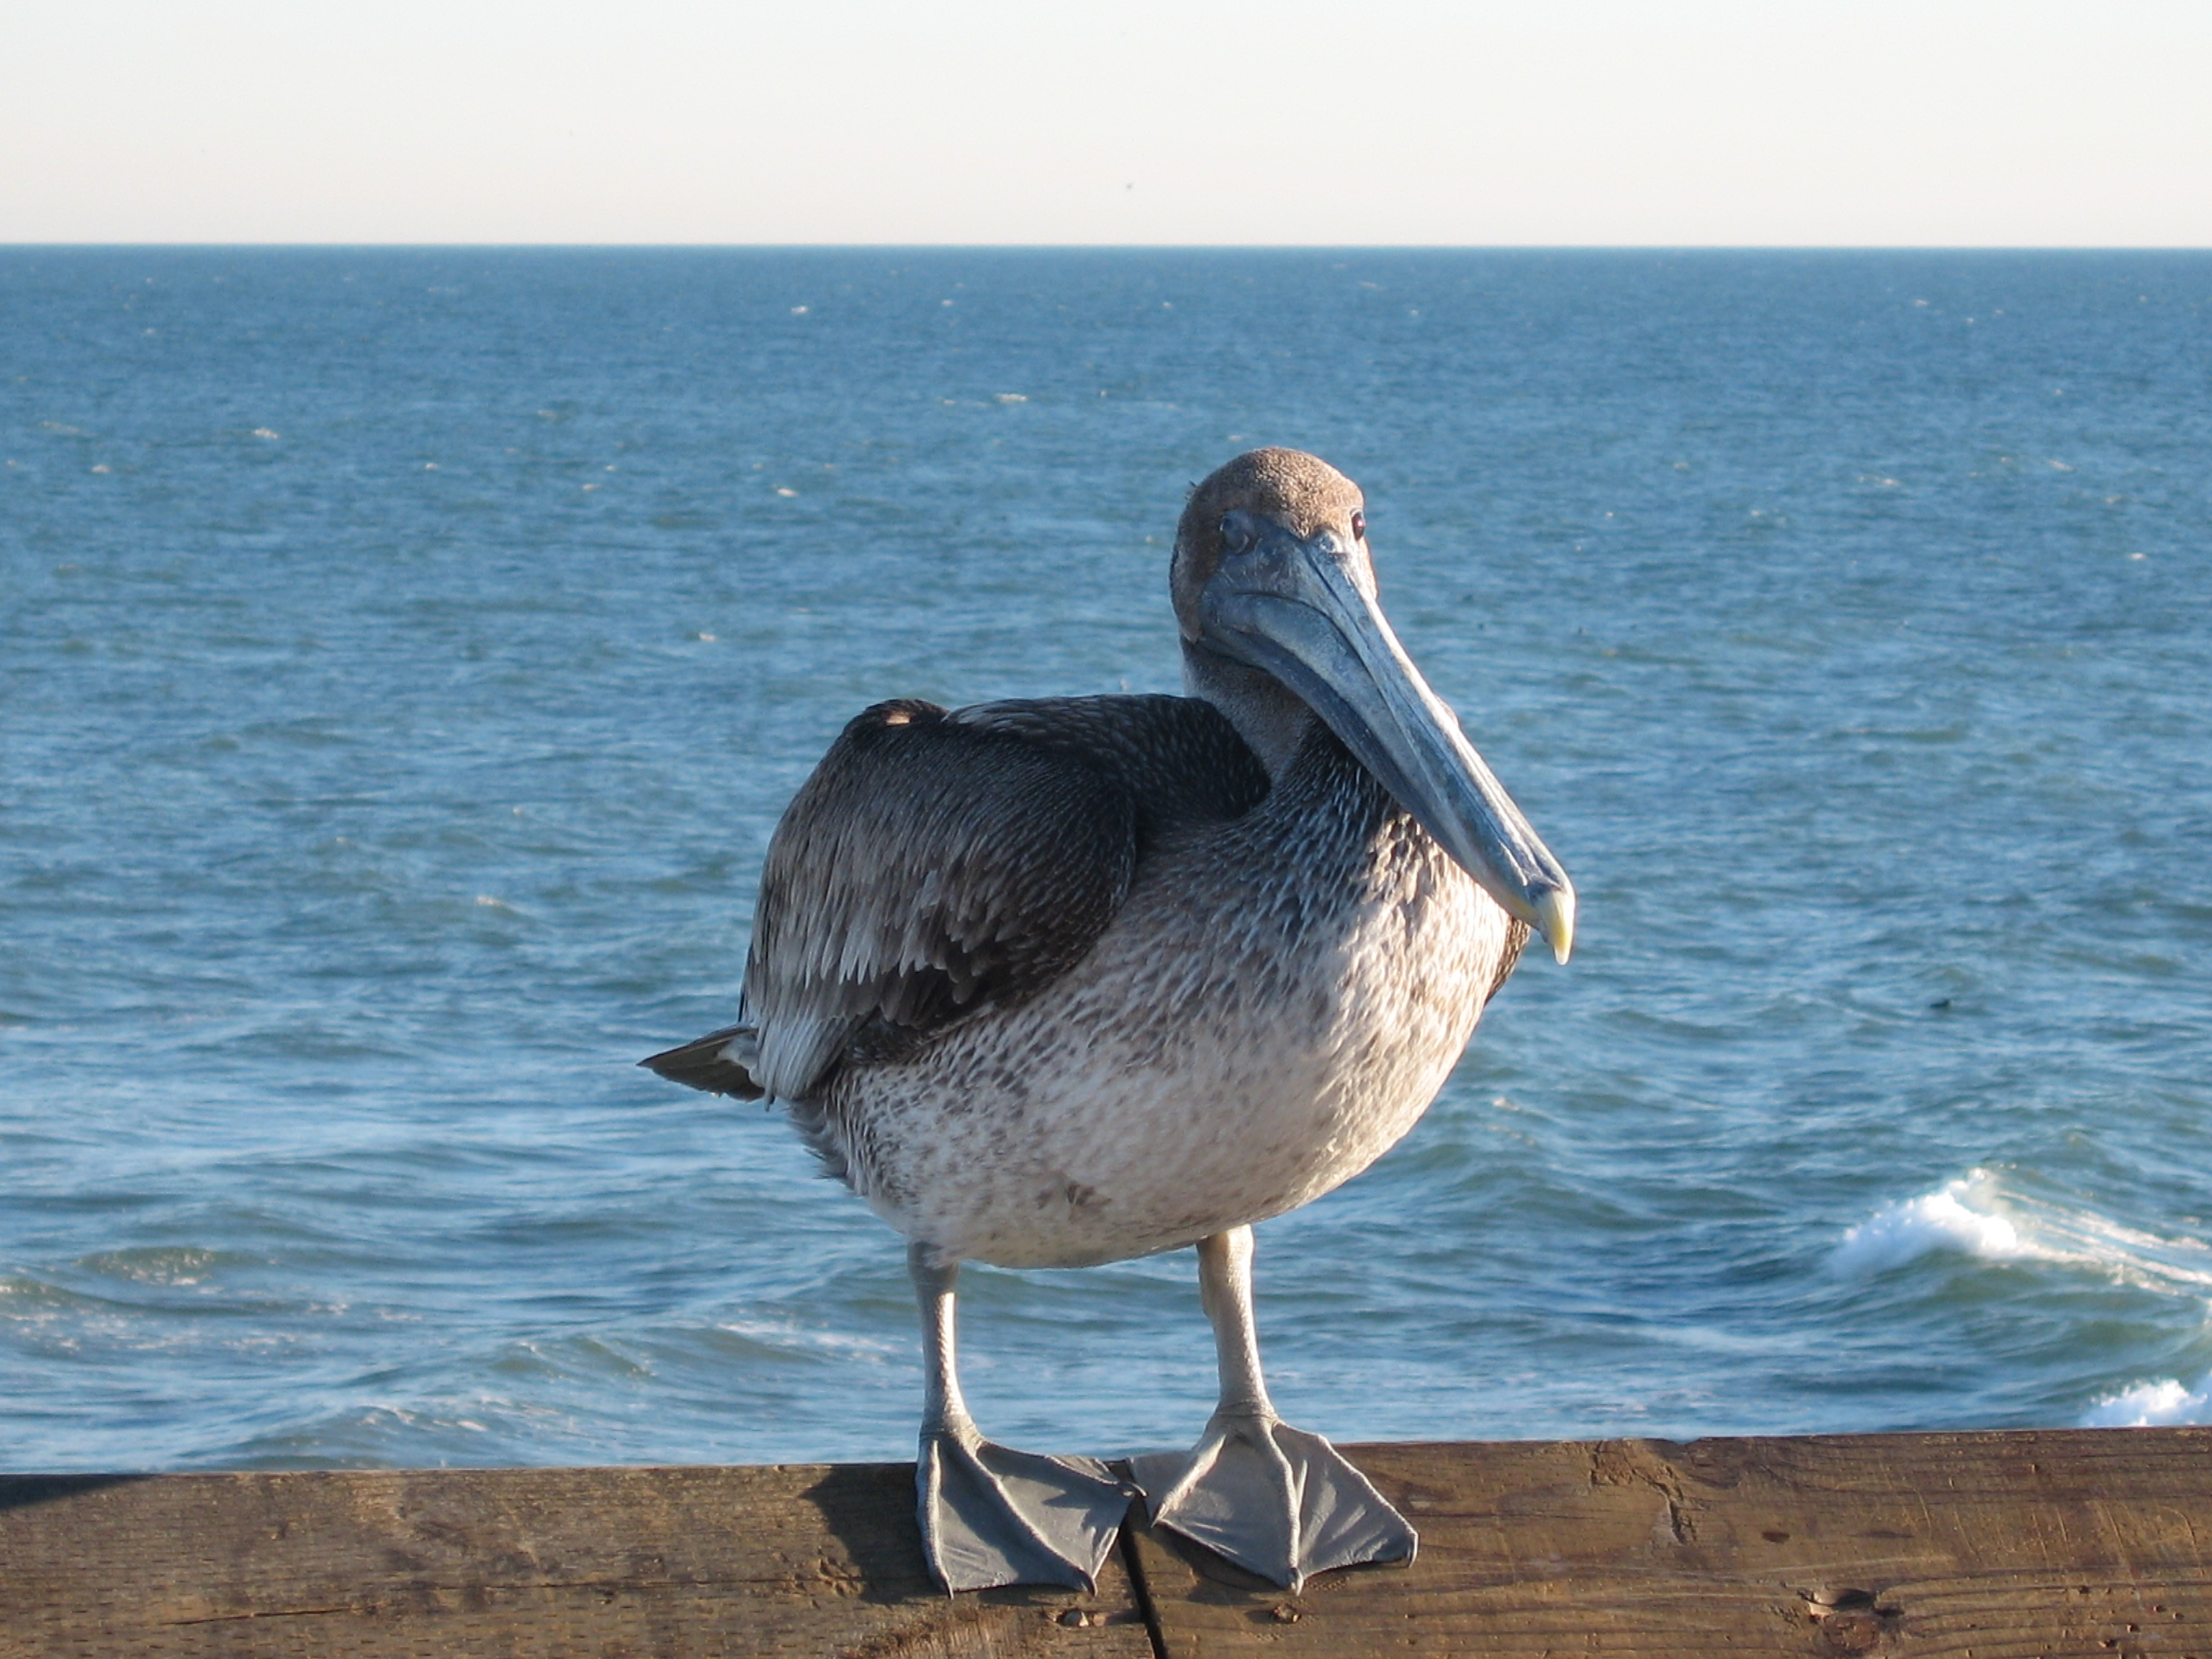 Sunbathing pelican in Newport